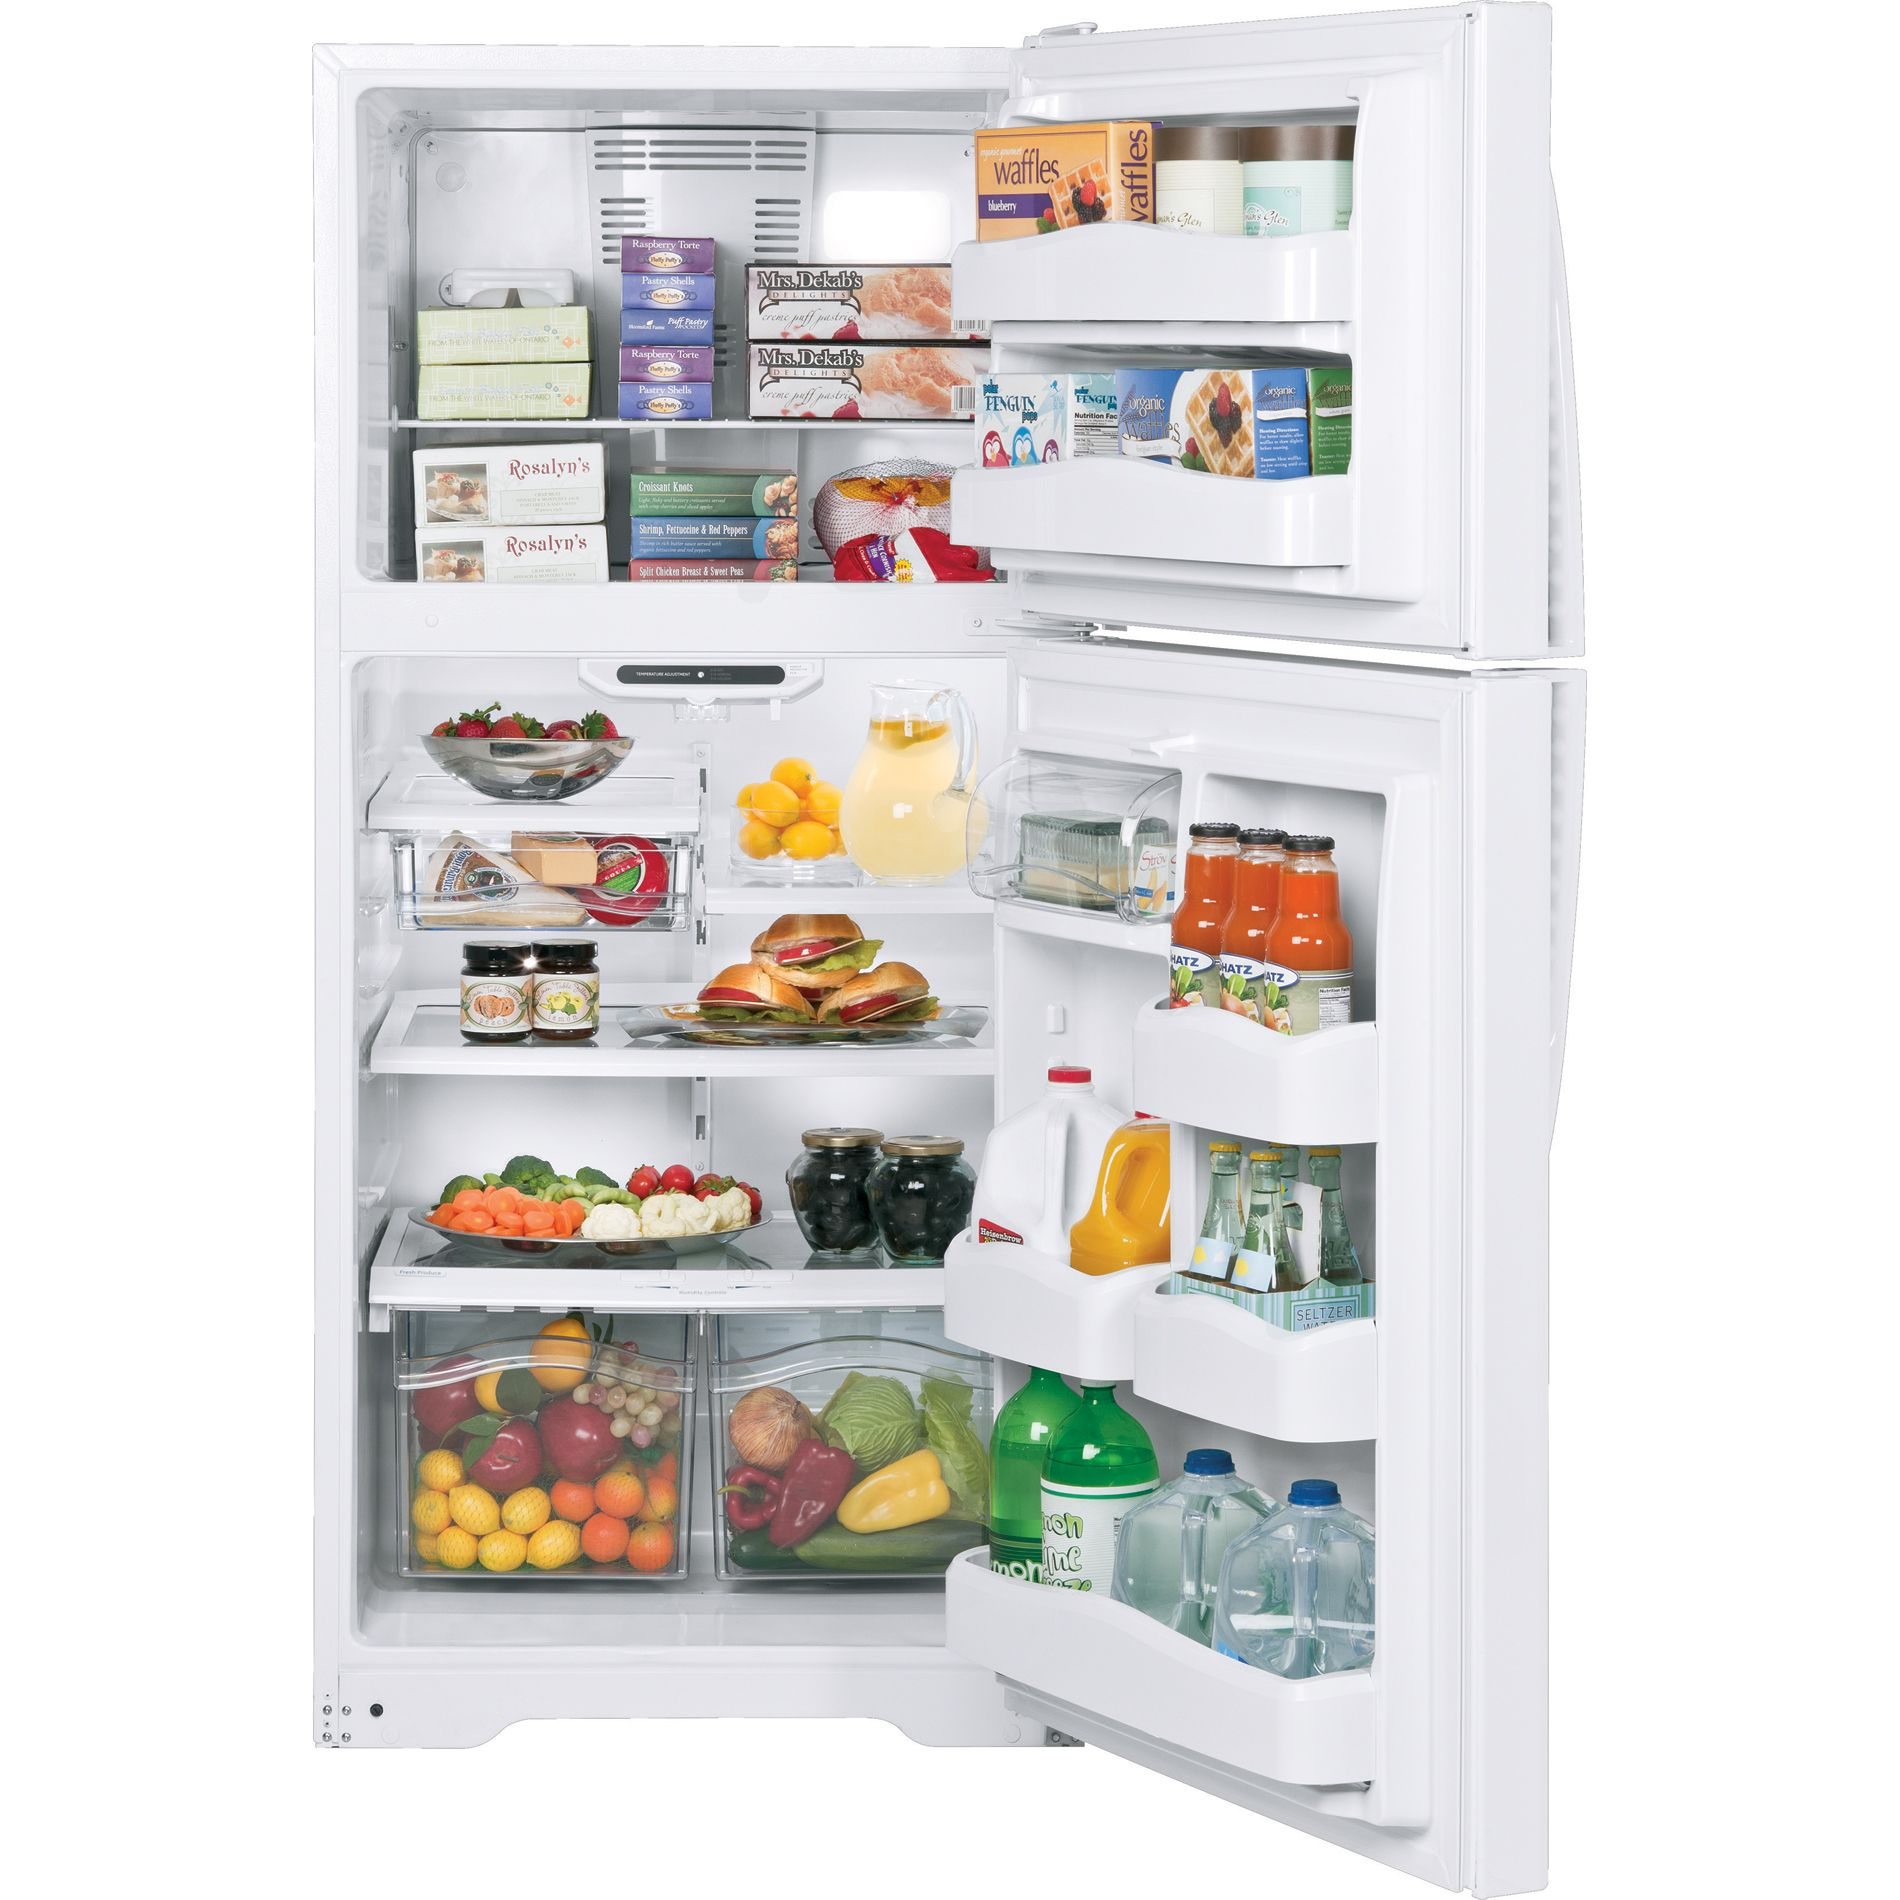 GE 20.0 cu. ft. Top Freezer Refrigerator - White